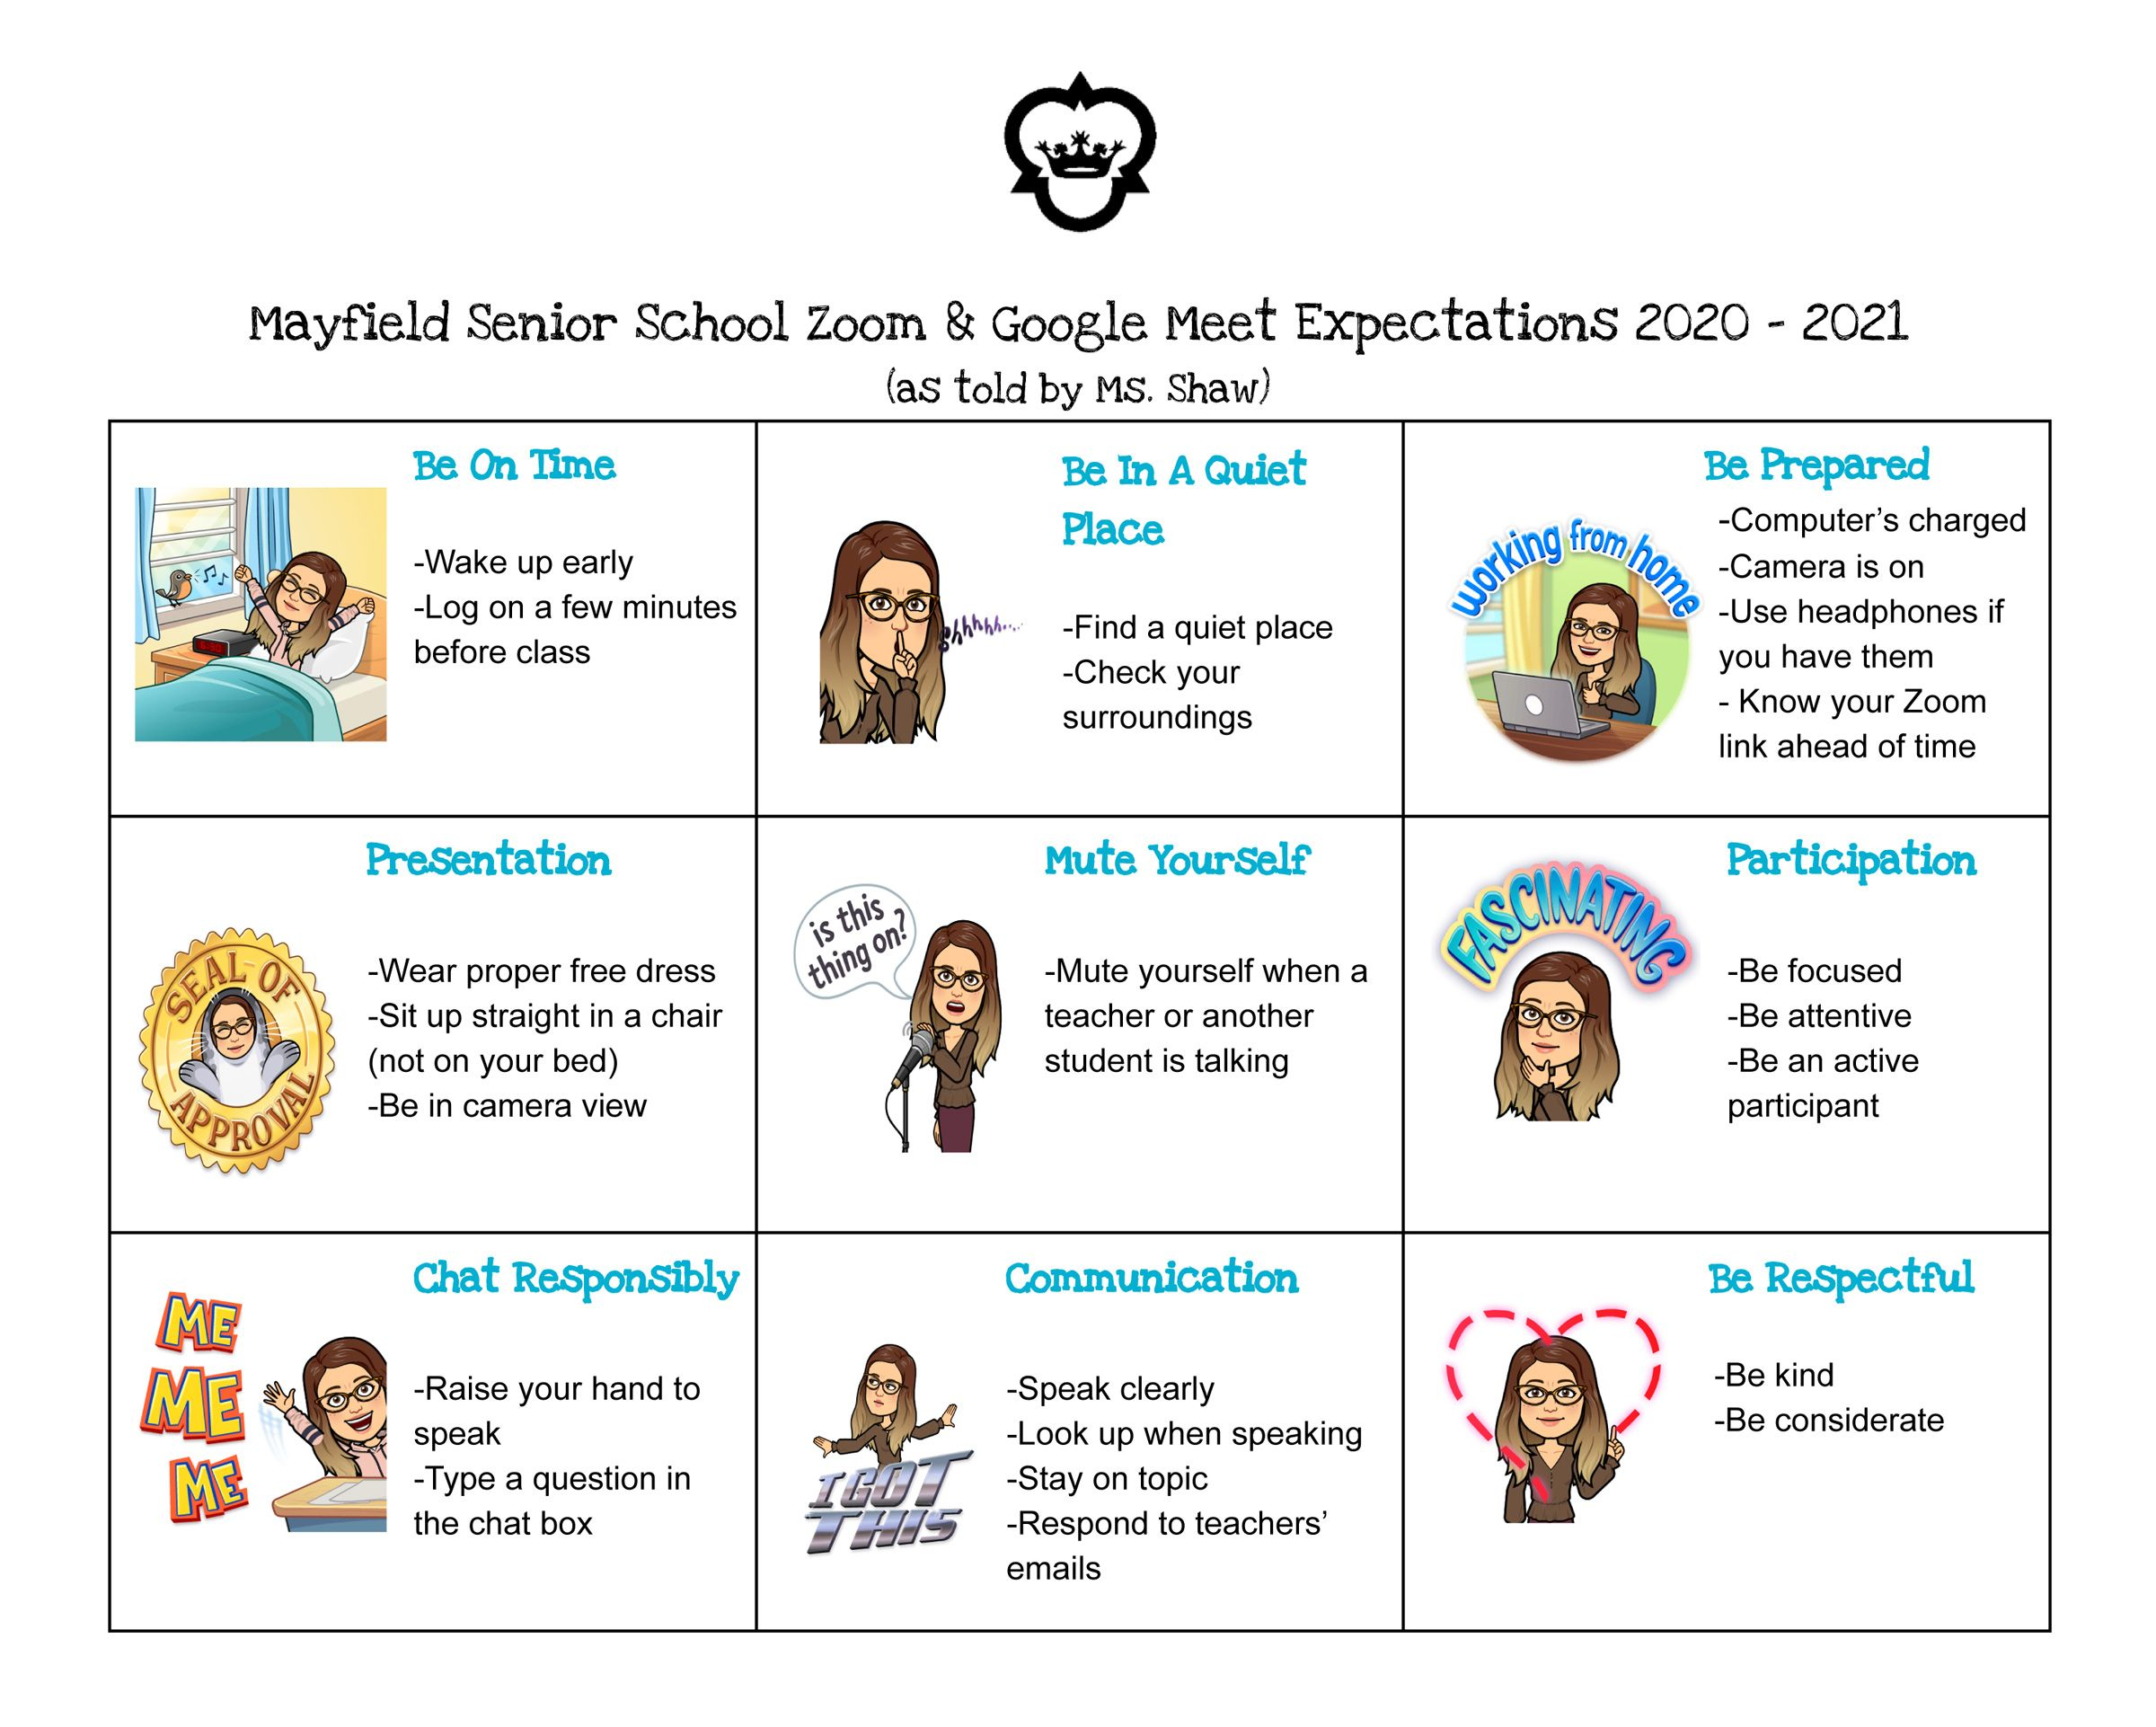 Remote Learning Expectations for Google Meet and Zoom Meetings